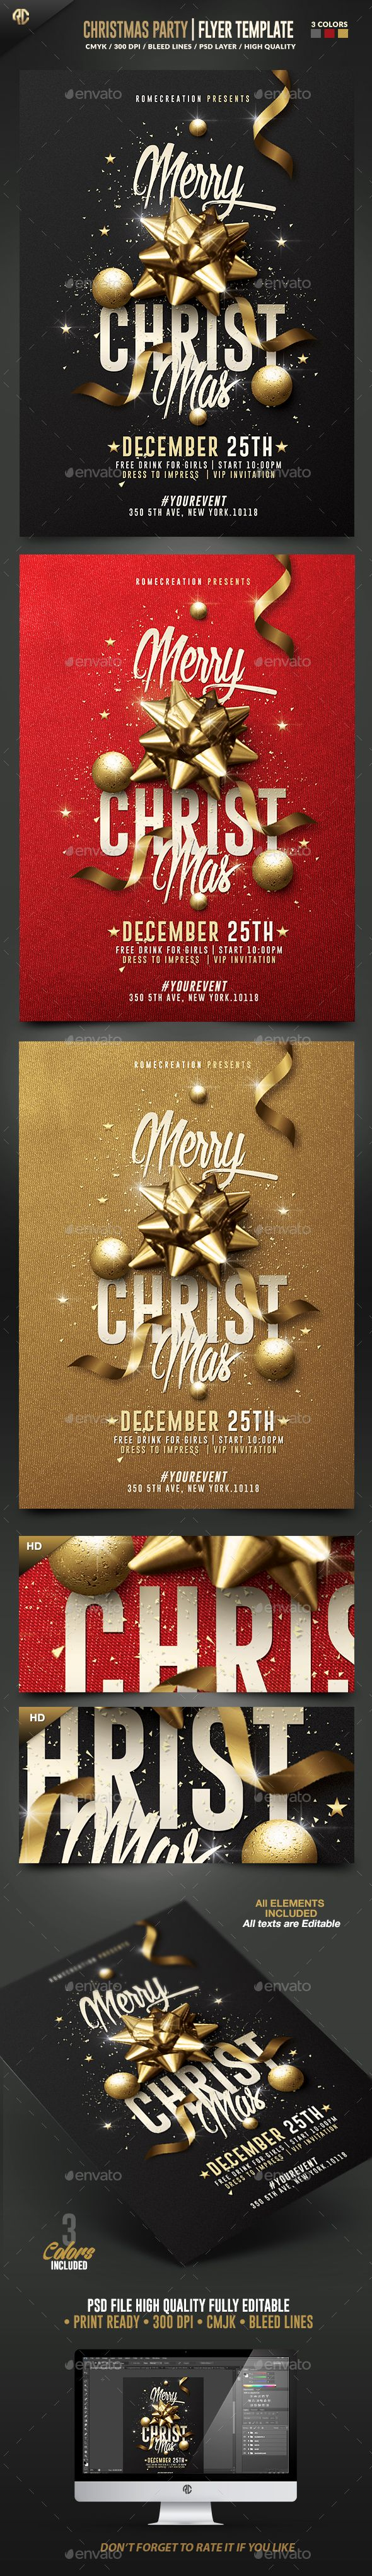 best ideas about christmas poster christmas classy christmas party psd flyer template